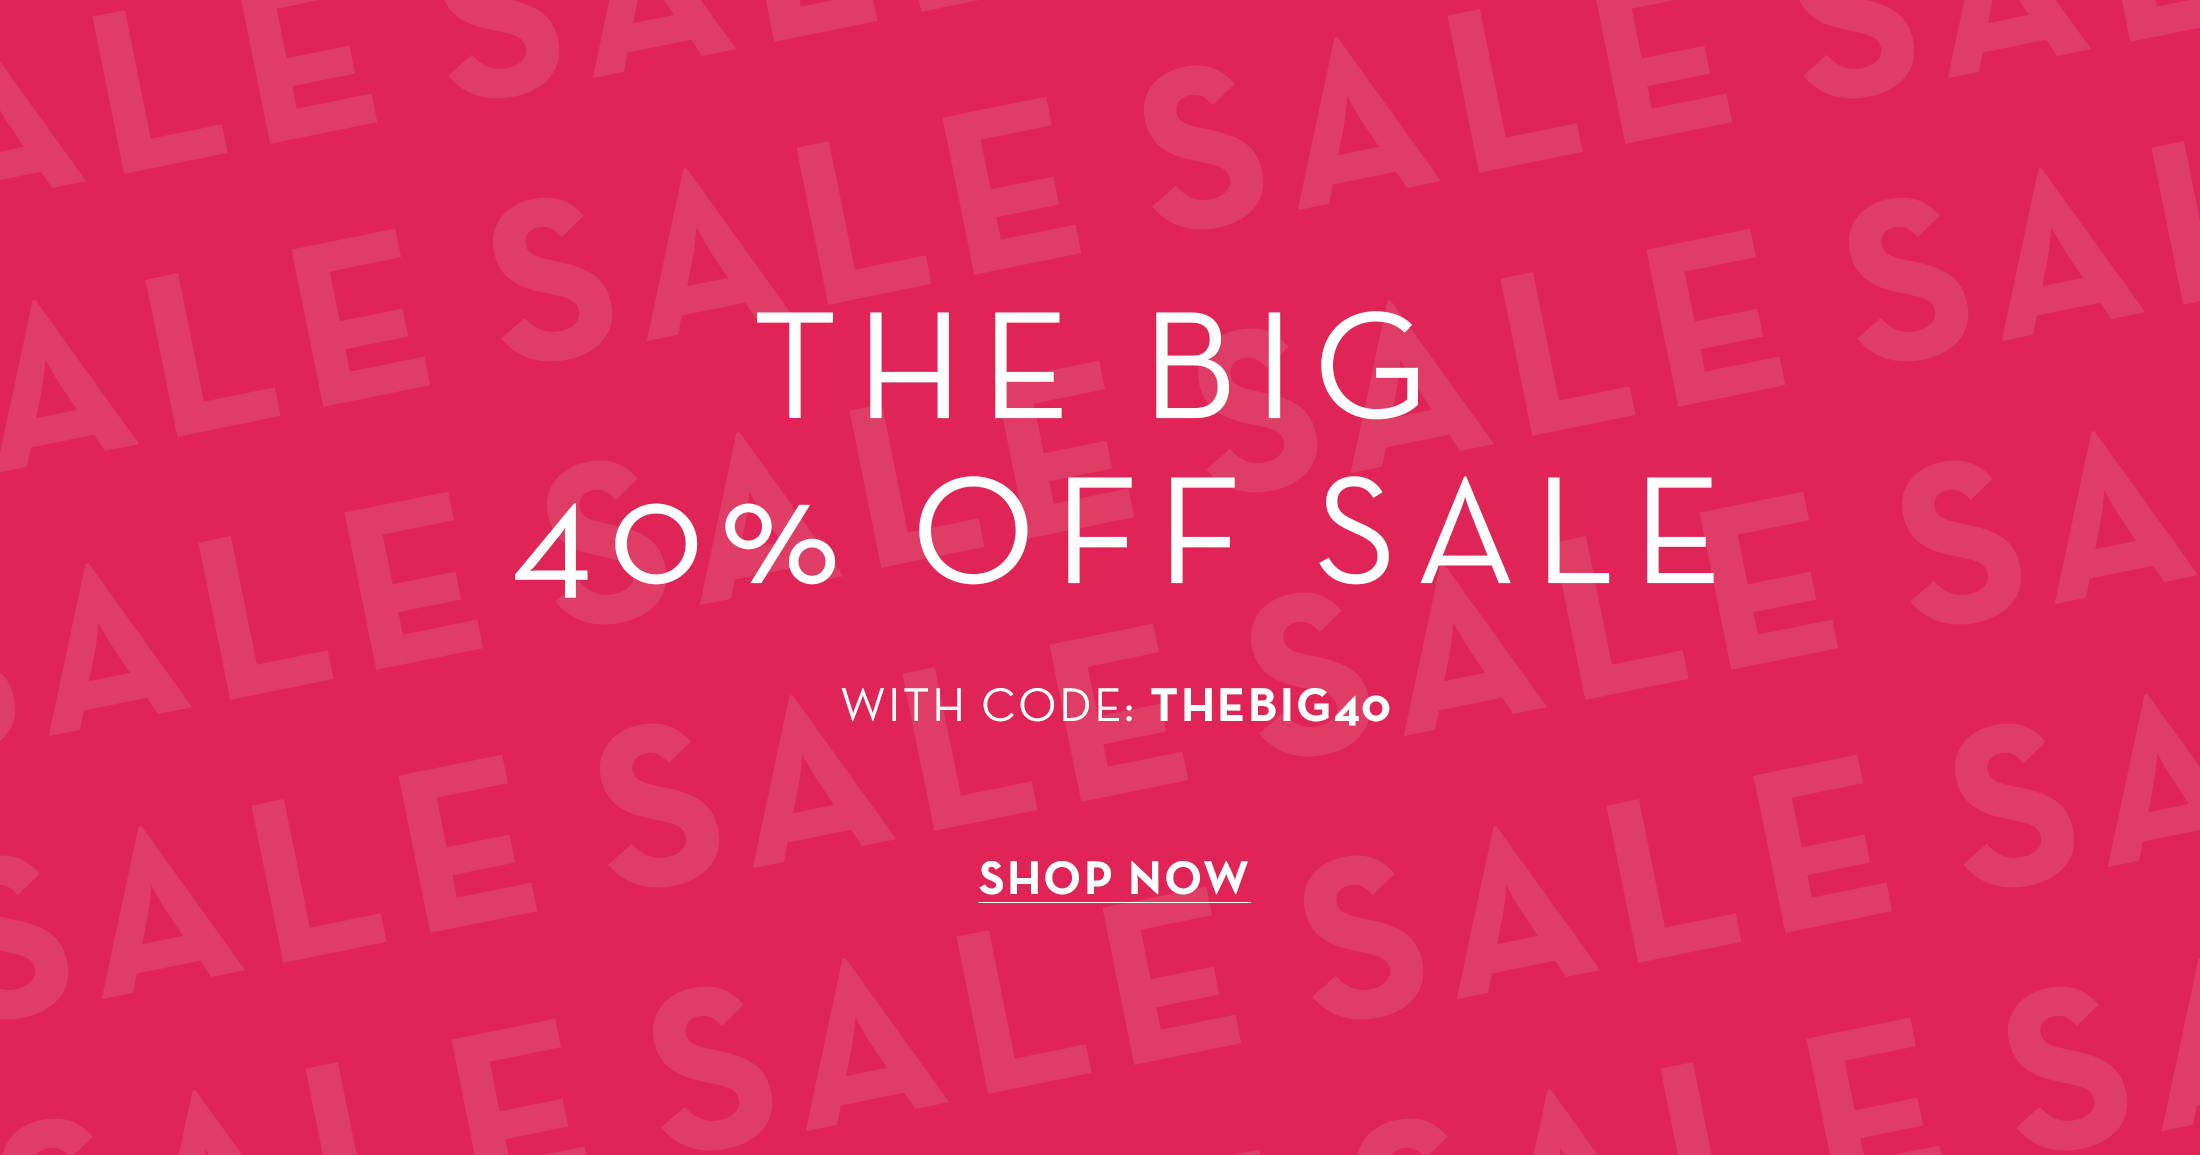 The Big 40% off sale with code THEBIG40